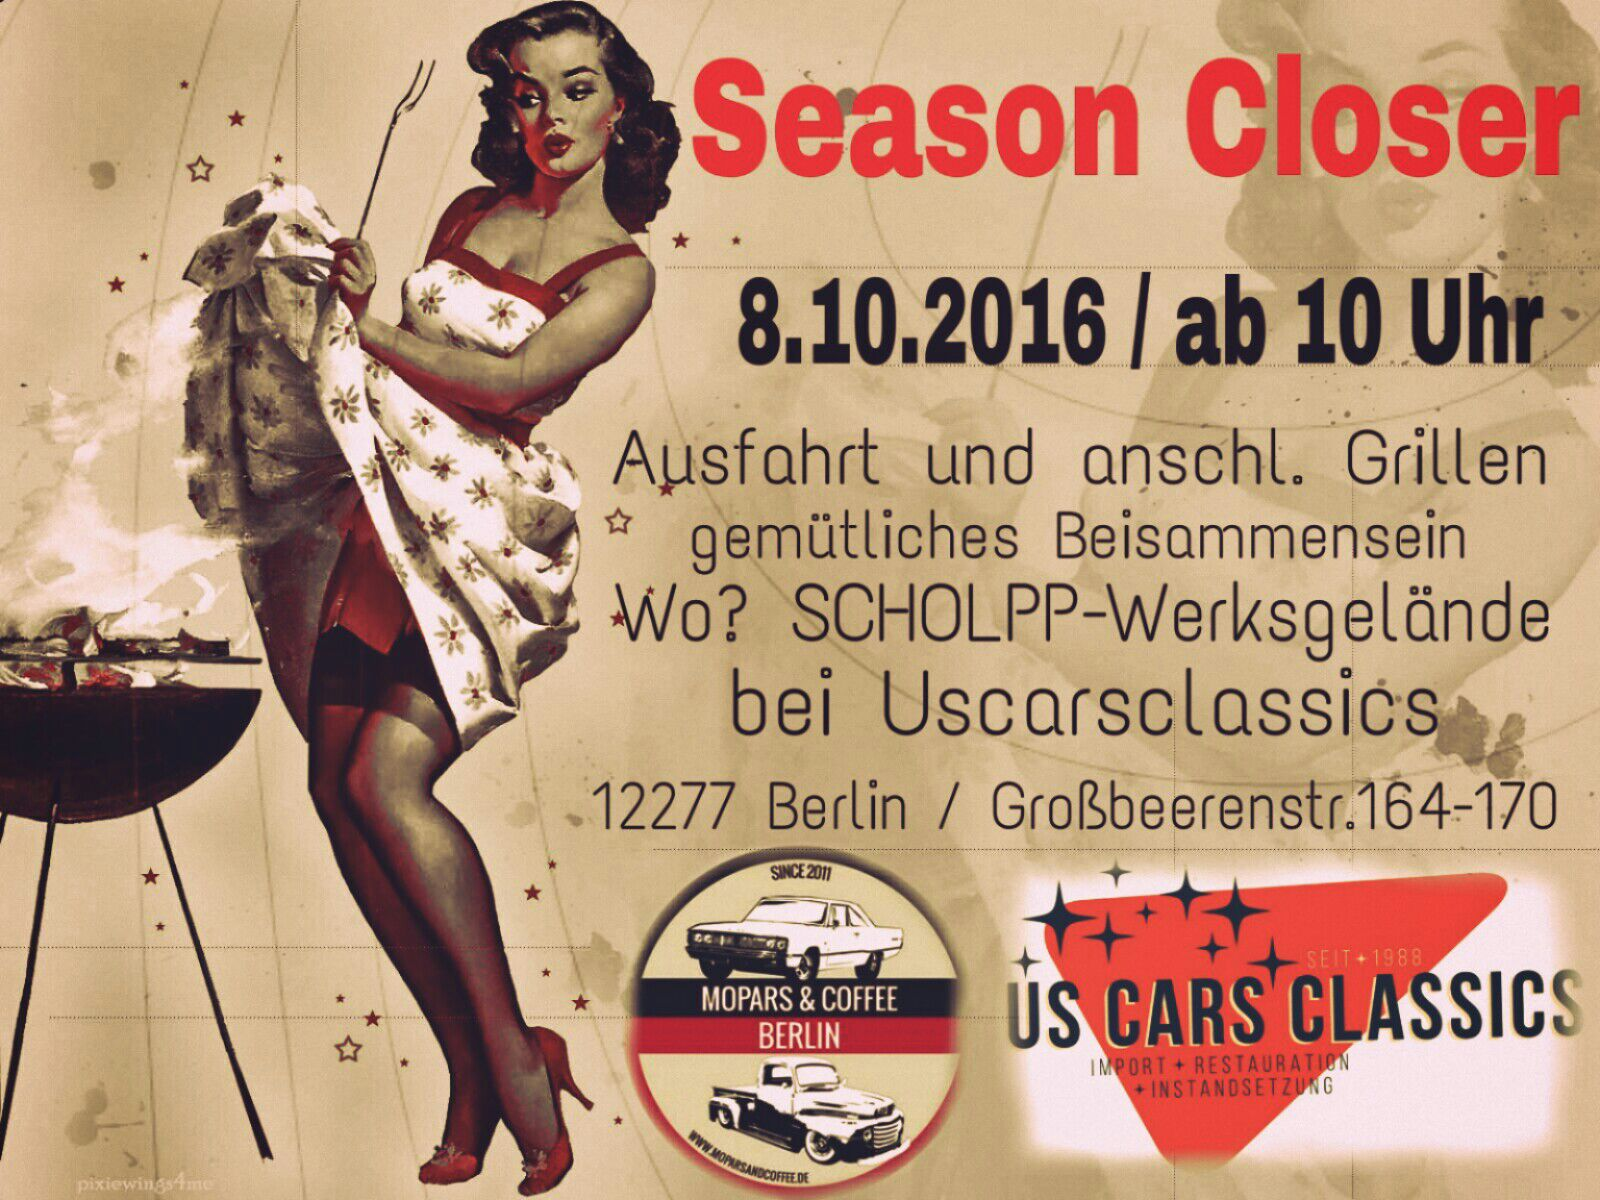 flyer-season-closer-08-10-2016